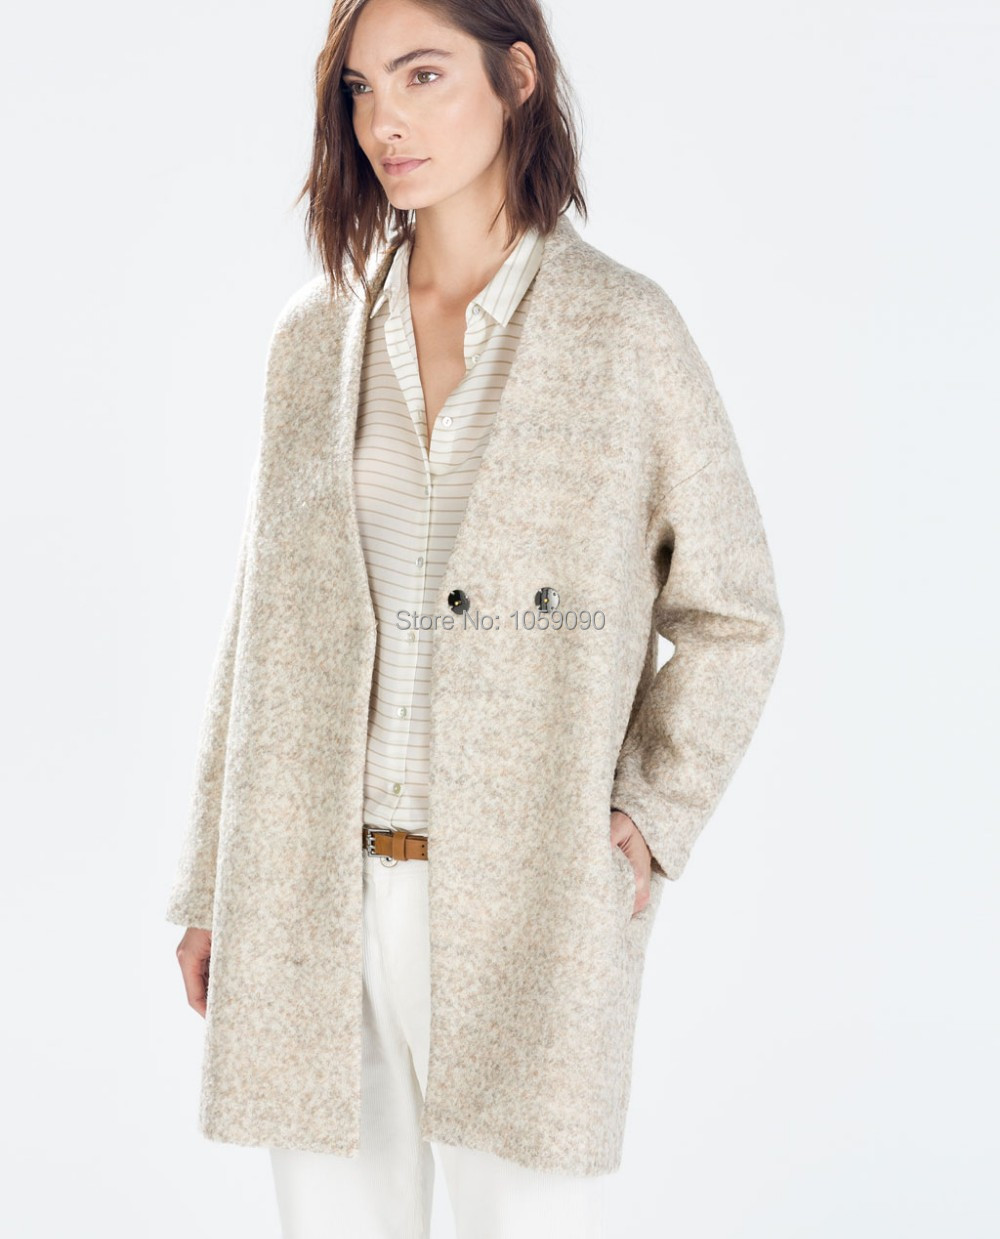 Beige coat women